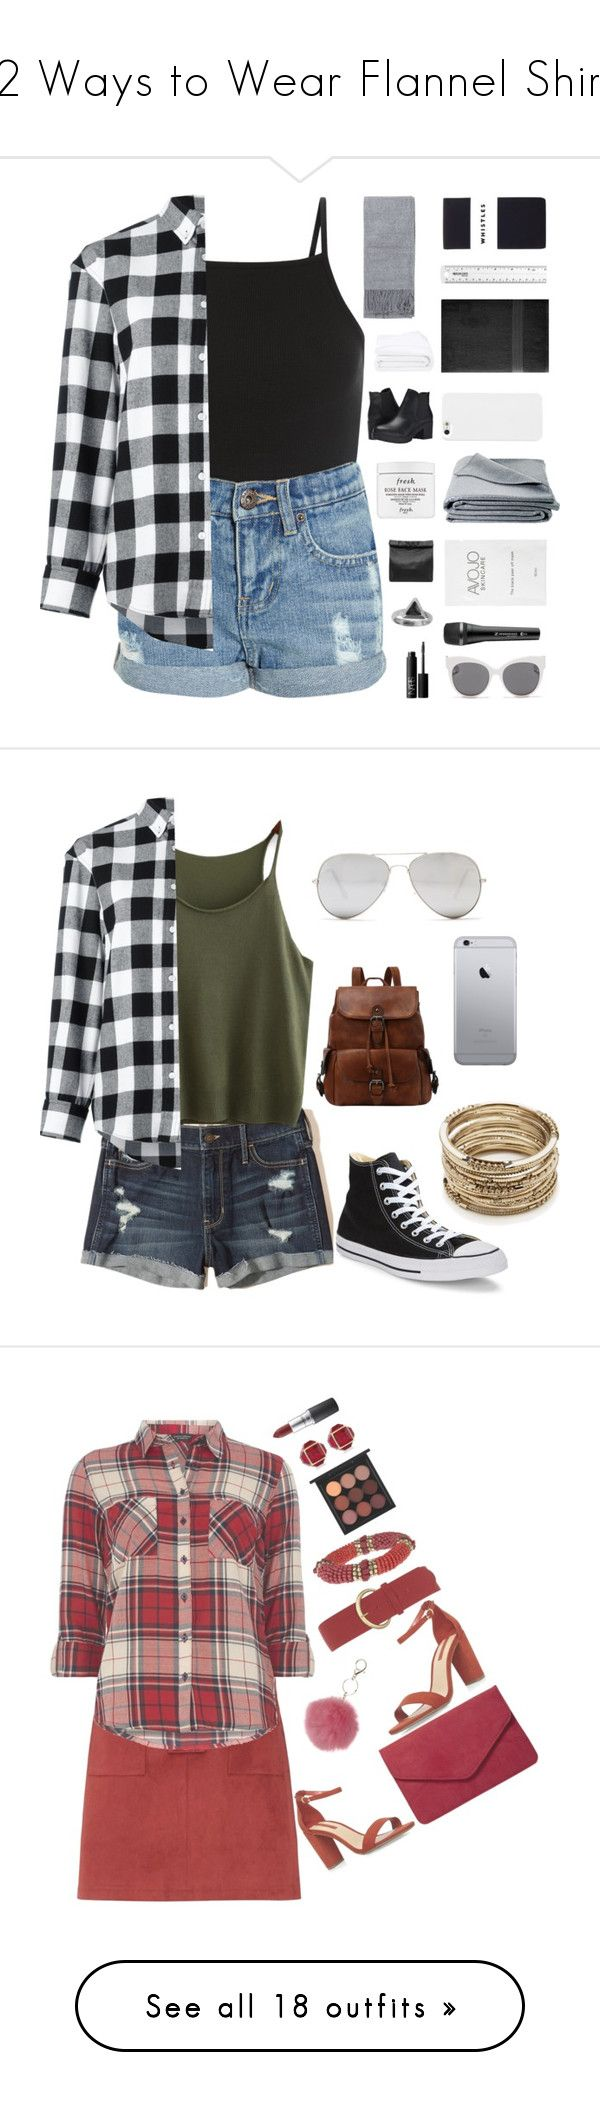 """""""12 Ways to Wear Flannel Shirts"""" by polyvore-editorial ❤ liked on Polyvore featuring flannelshirts, waystowear, Golden Goose, Topshop, Whistles, Royal Velvet, JAG Zoeppritz, Steve Madden, Frette and Fresh"""